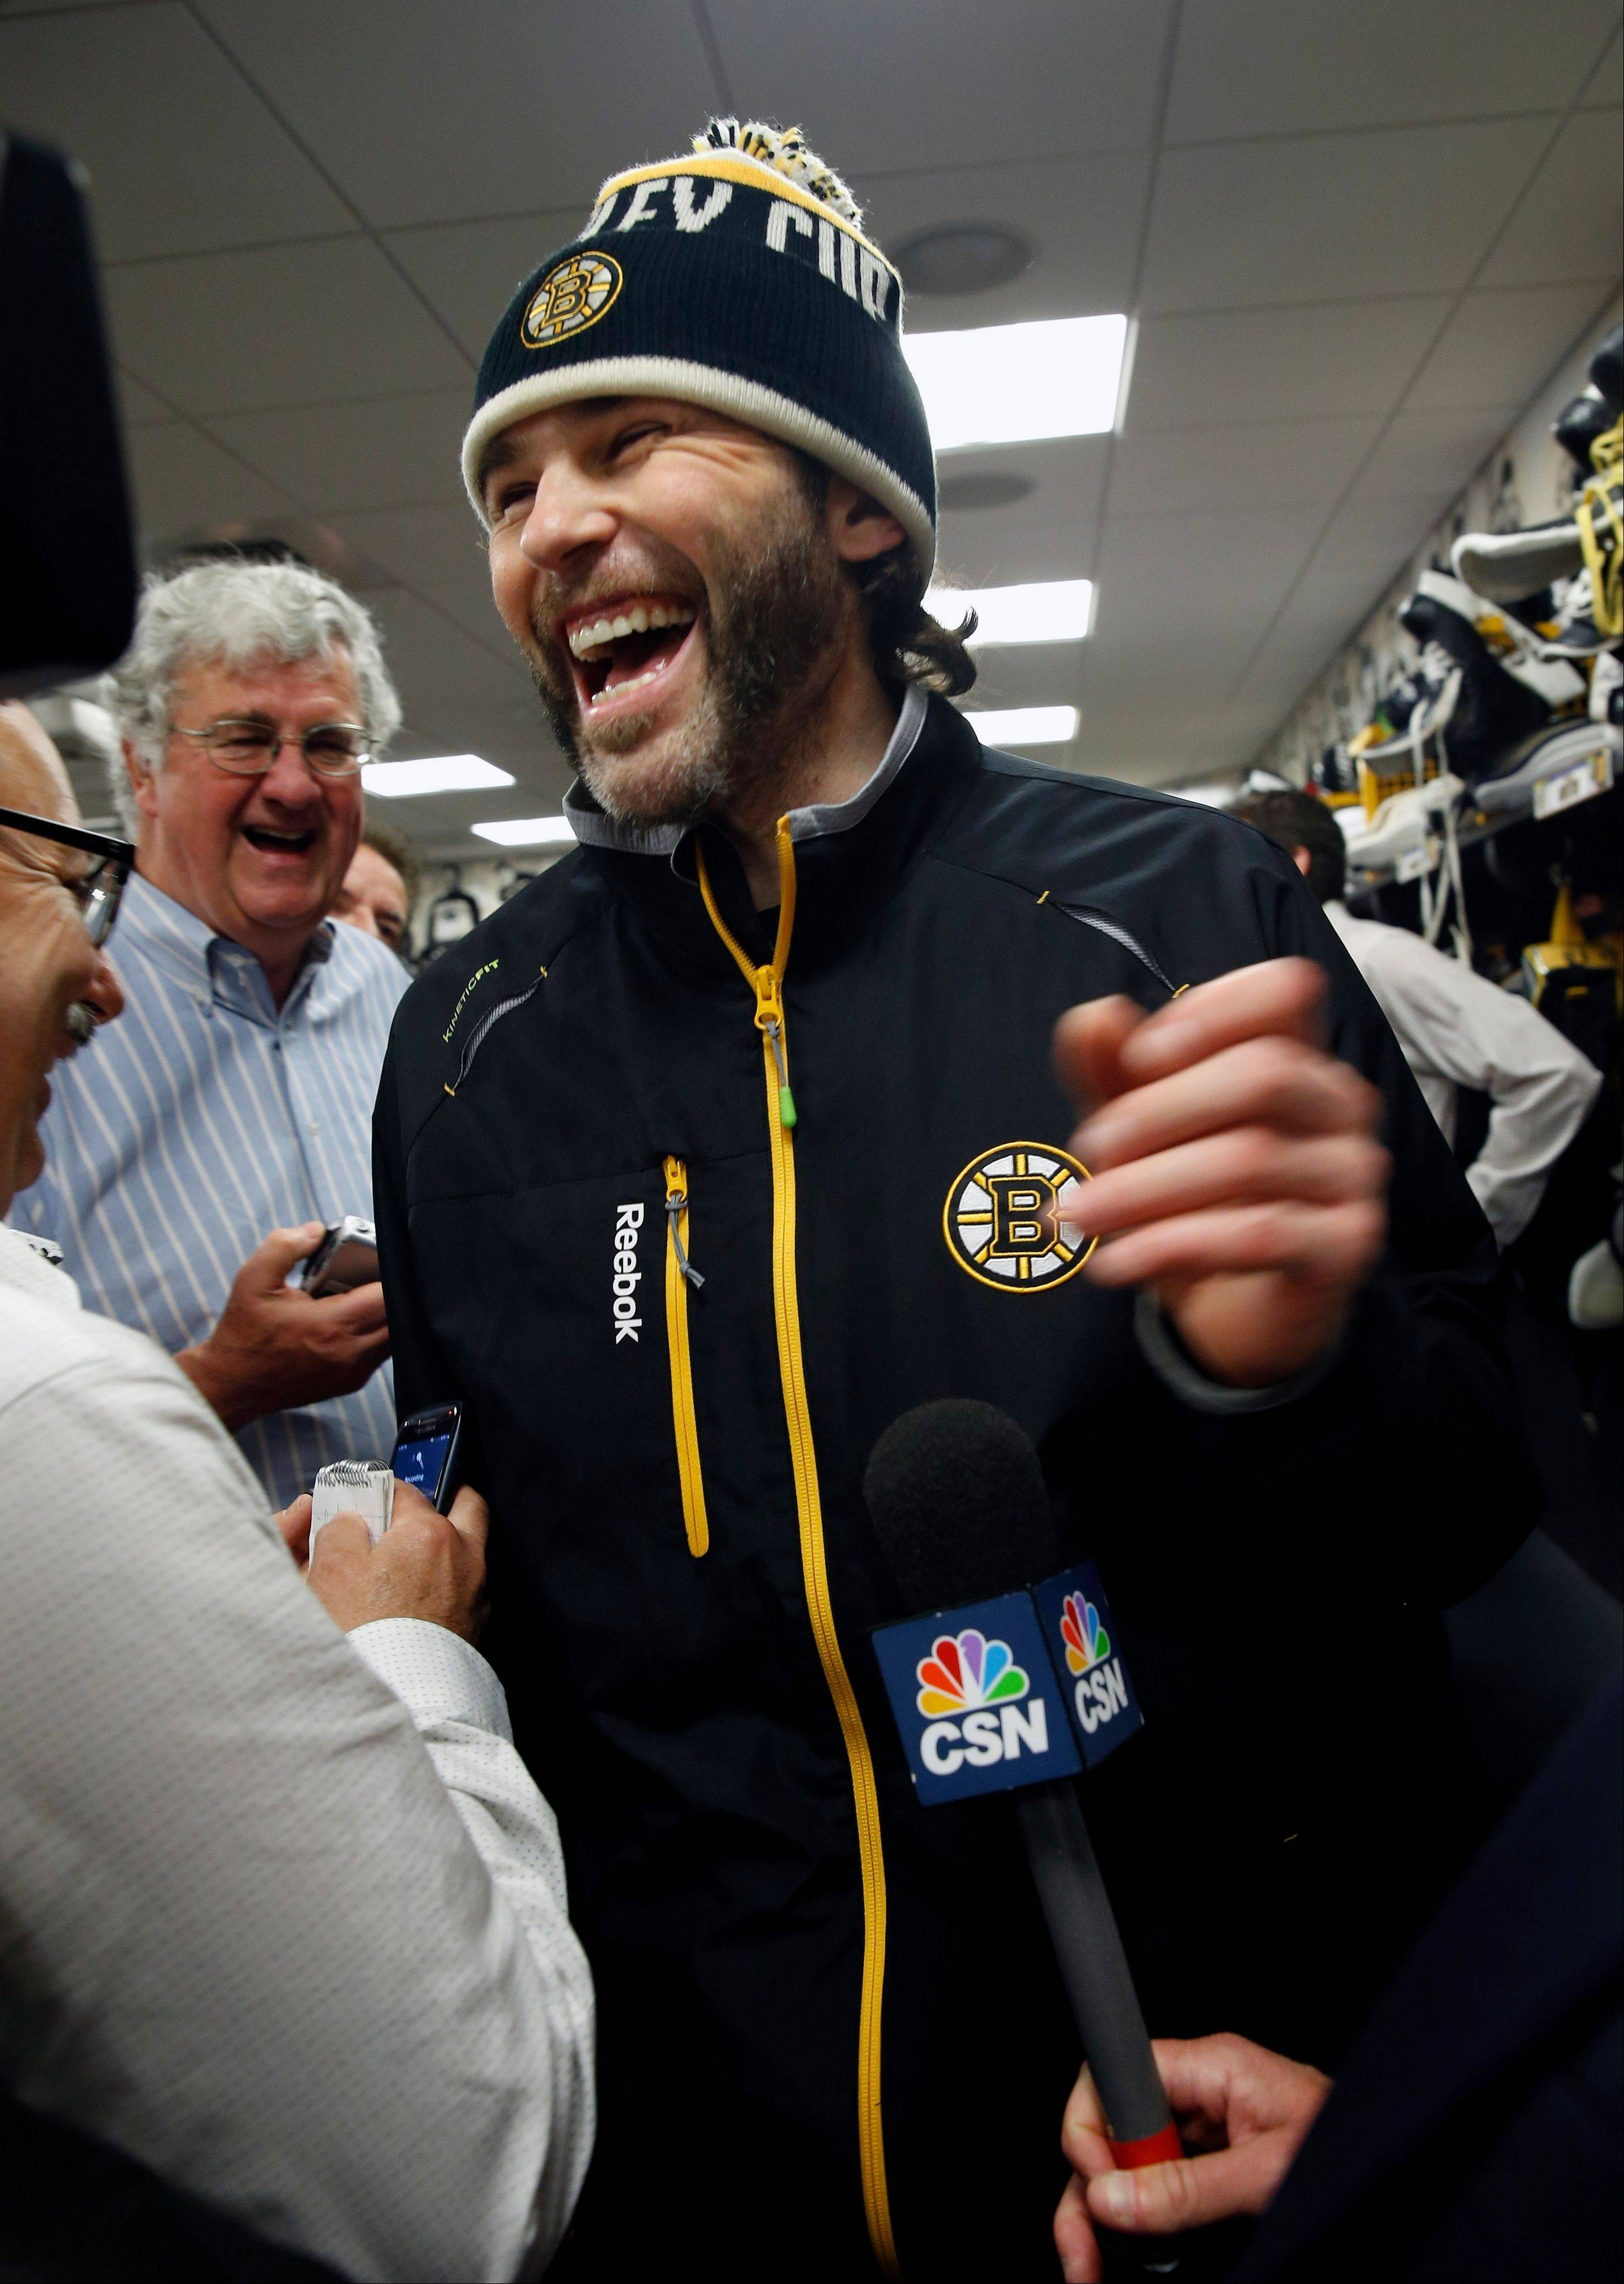 The Bruins' Jaromir Jagr was 20 years old and playing for Pittsburgh in 1992 when the Penguins swept the Blackhawks in the Stanley Cup Finals.